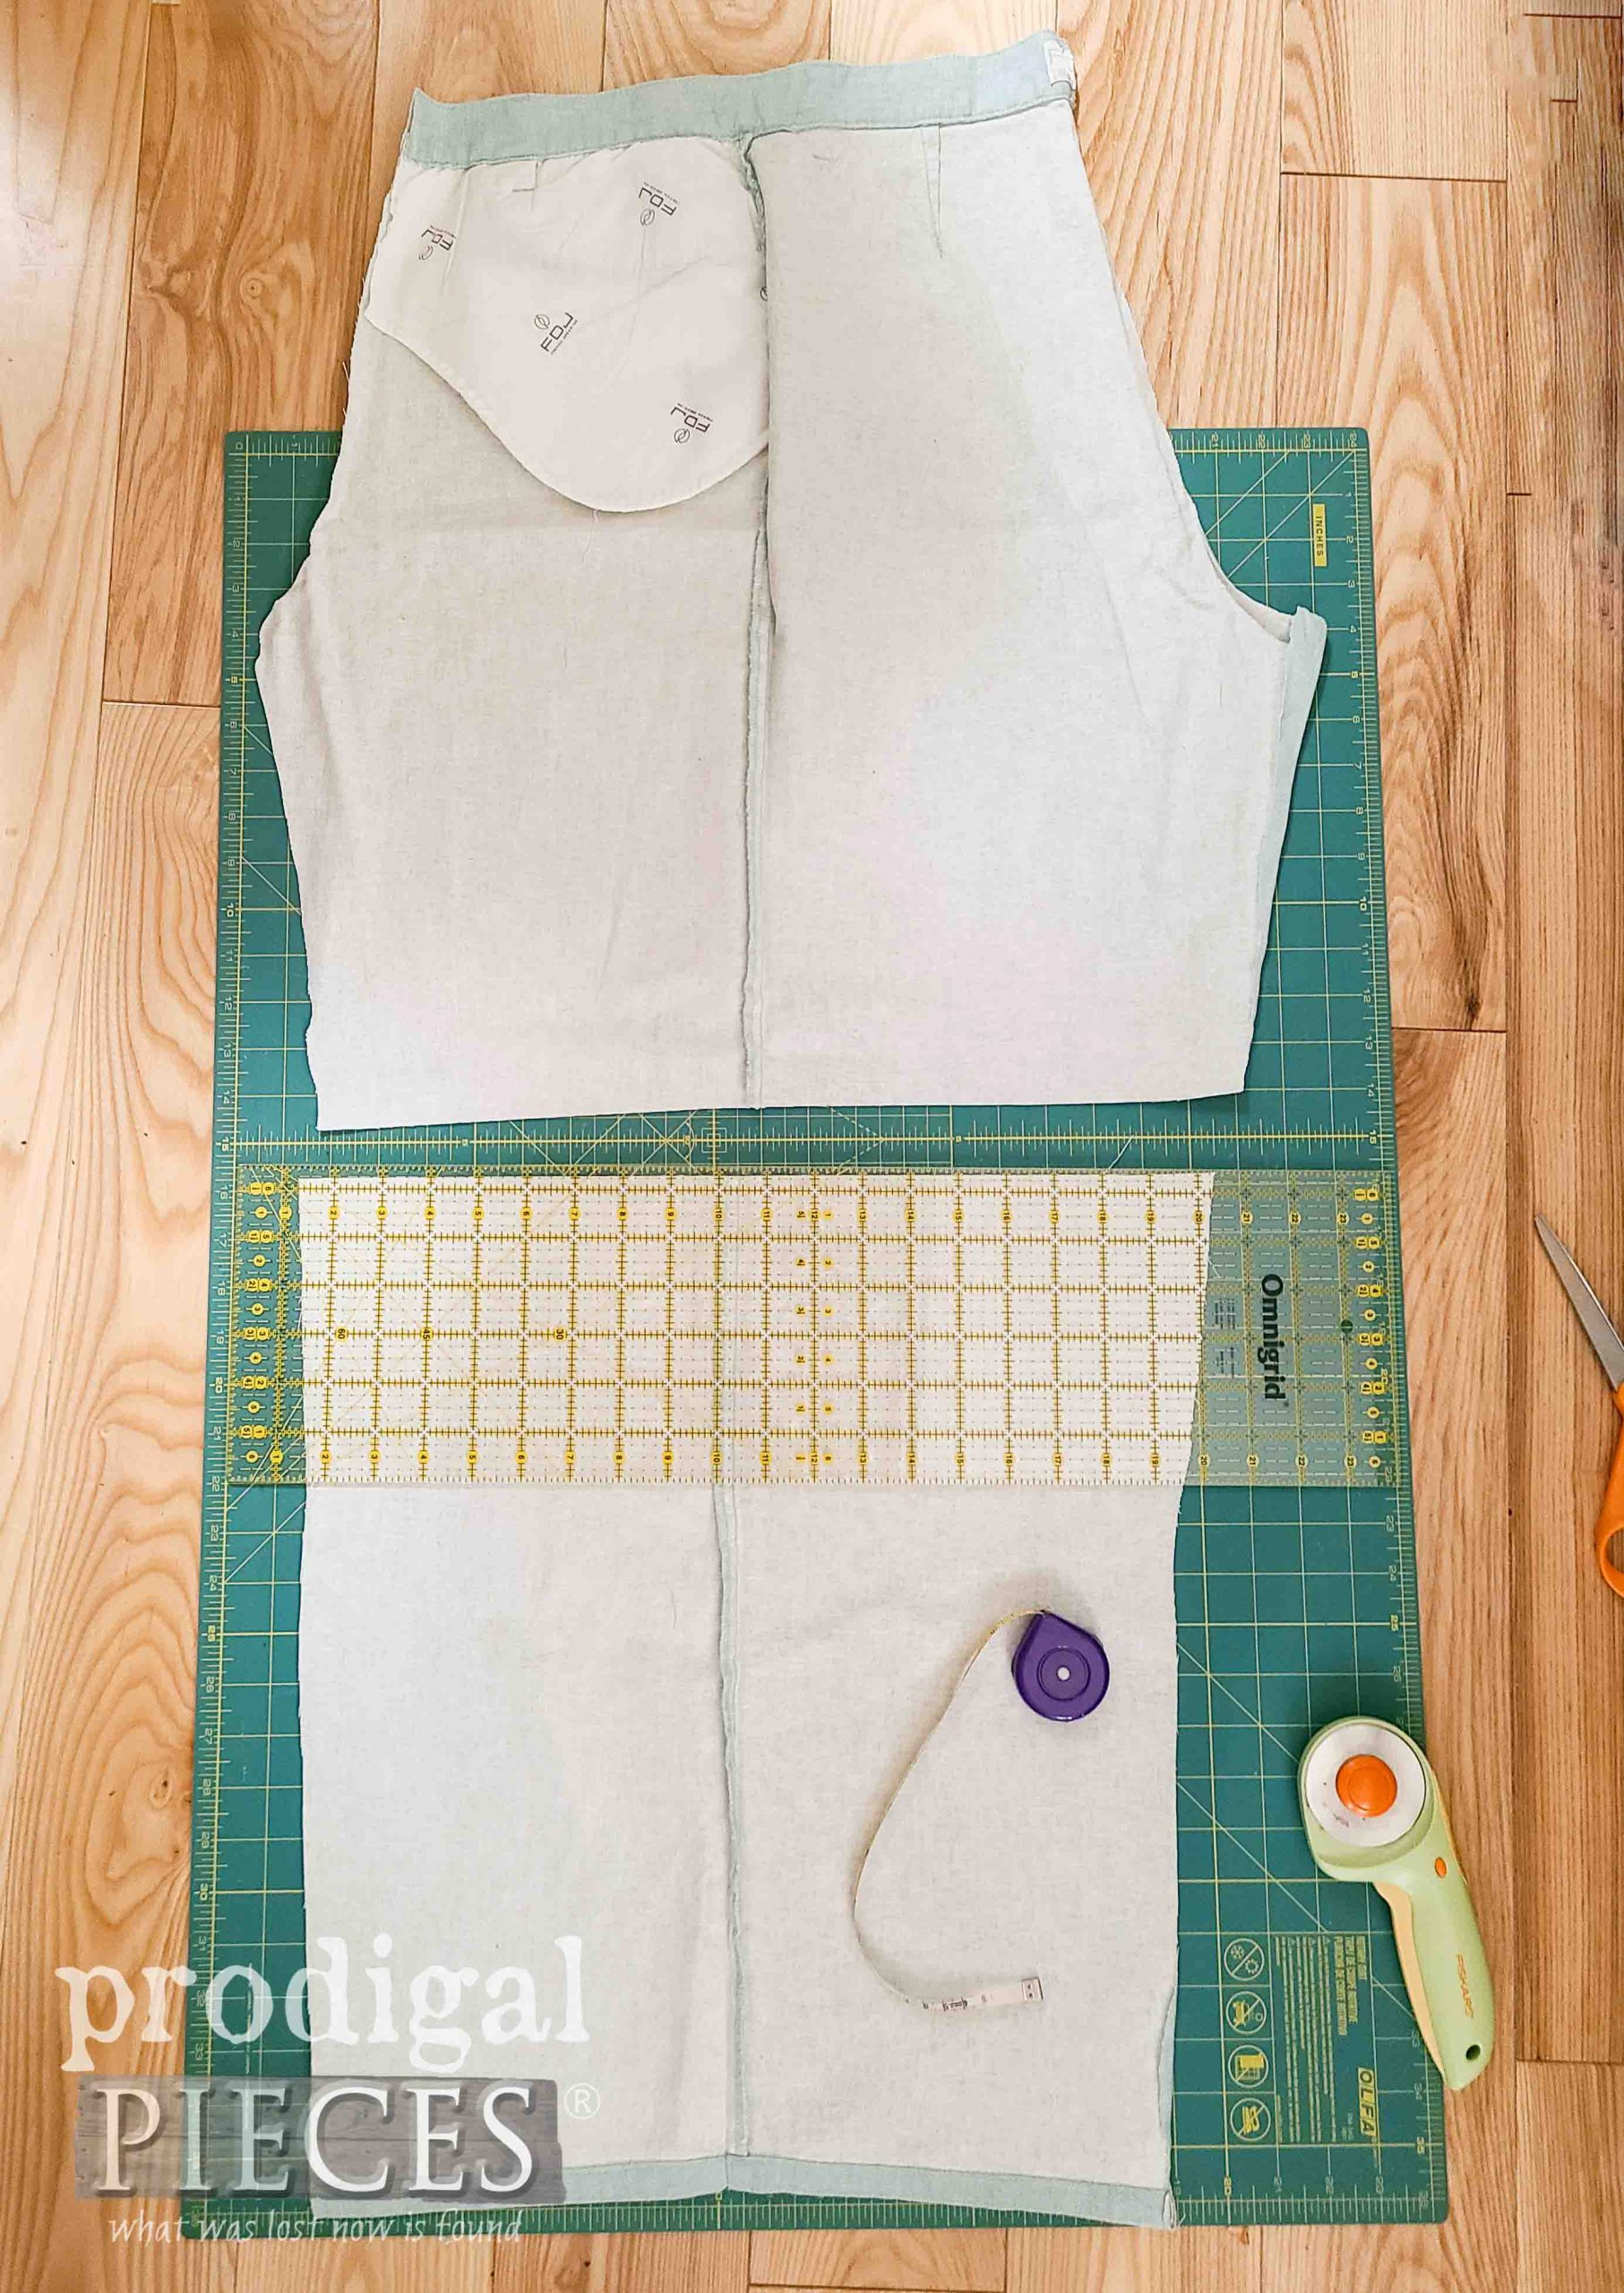 Cutting Smock Skirt from Upcycled Linen Pants | prodigalpieces.com